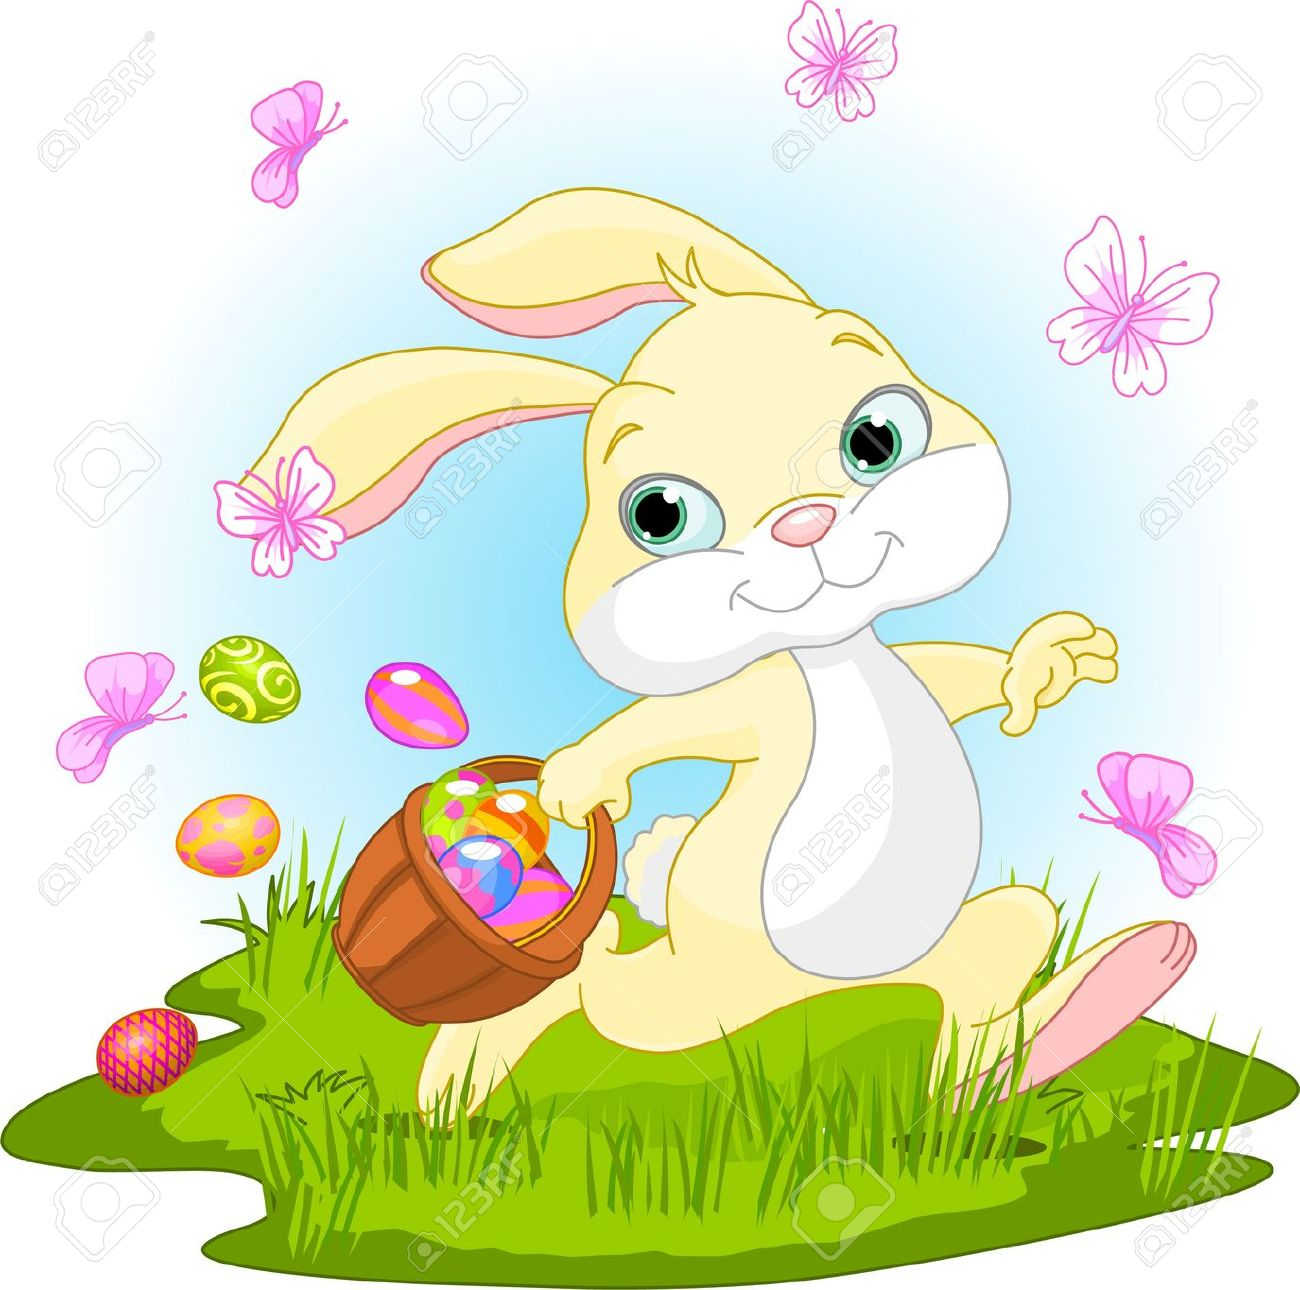 Cute easter basket clipart svg free stock Illustration Of Cute Easter Bunny Hiding Eggs Royalty Free ... svg free stock